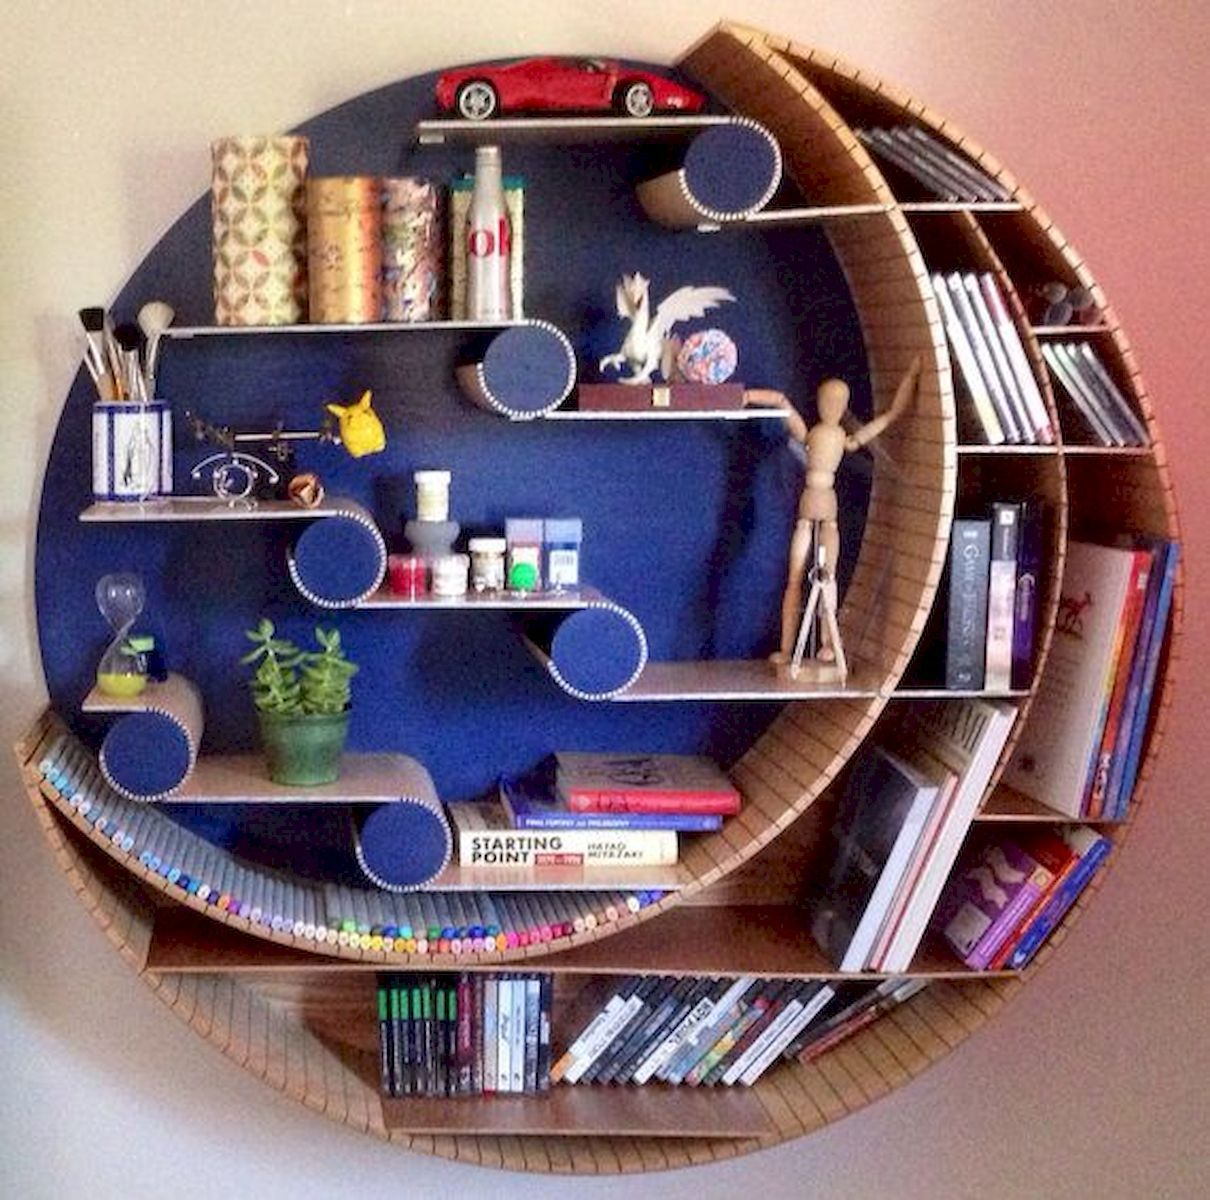 bookshelves, round with horizontal middle